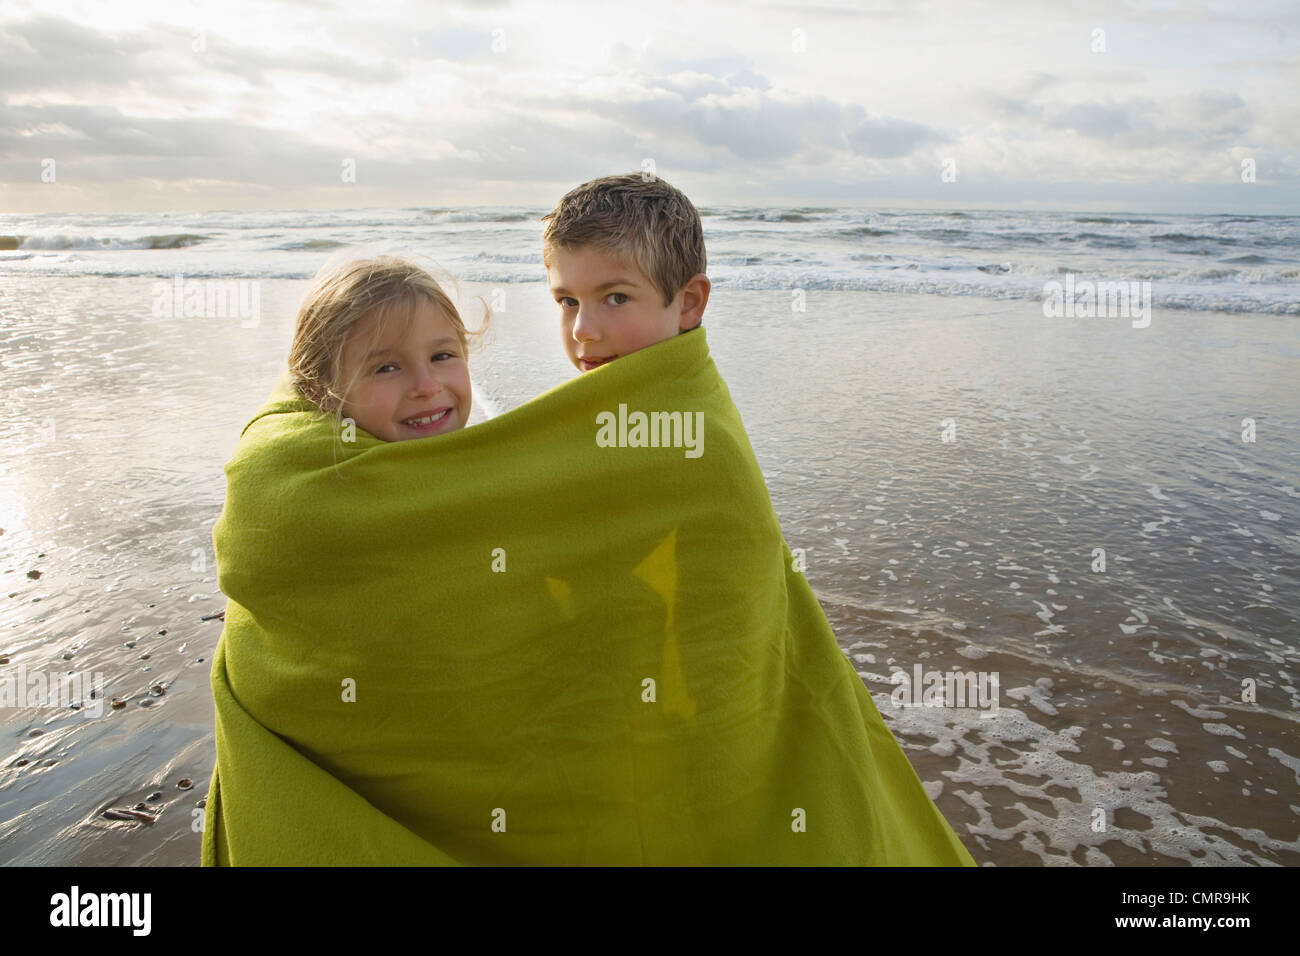 Kinder in Decke am Meer Stockfoto